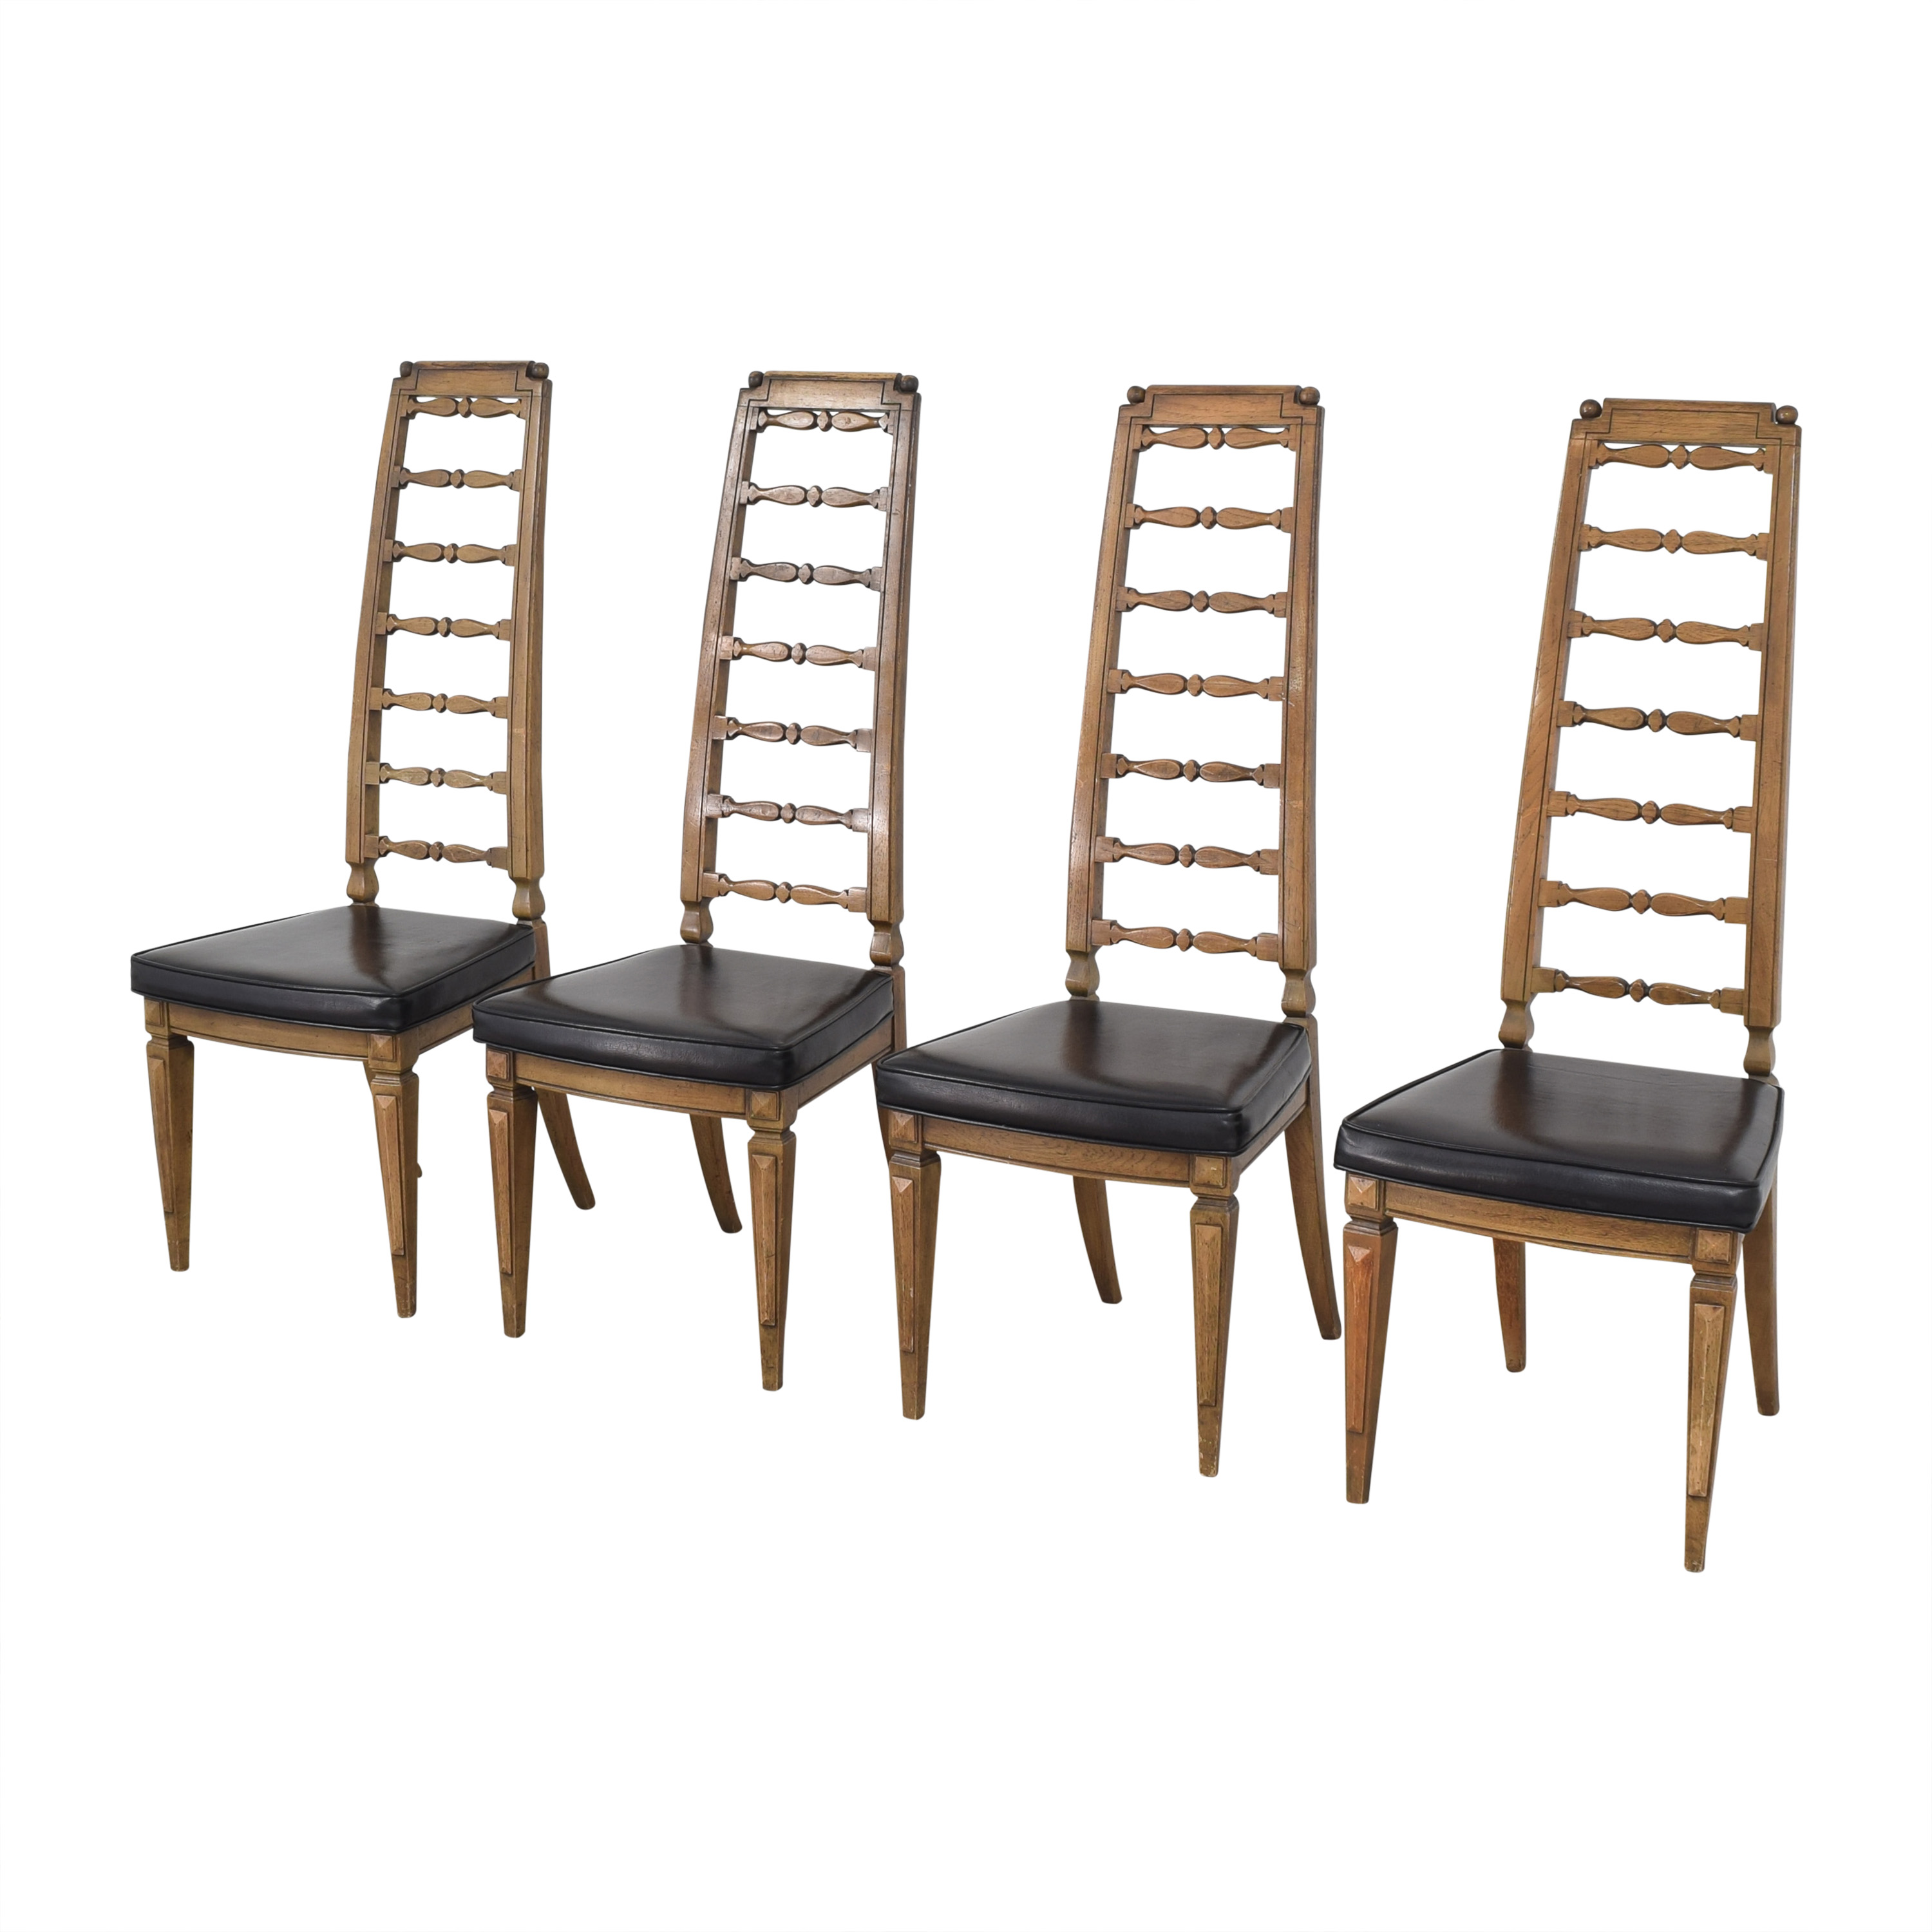 Thomasville Thomasville Tall Ladder Back Dining Chairs second hand